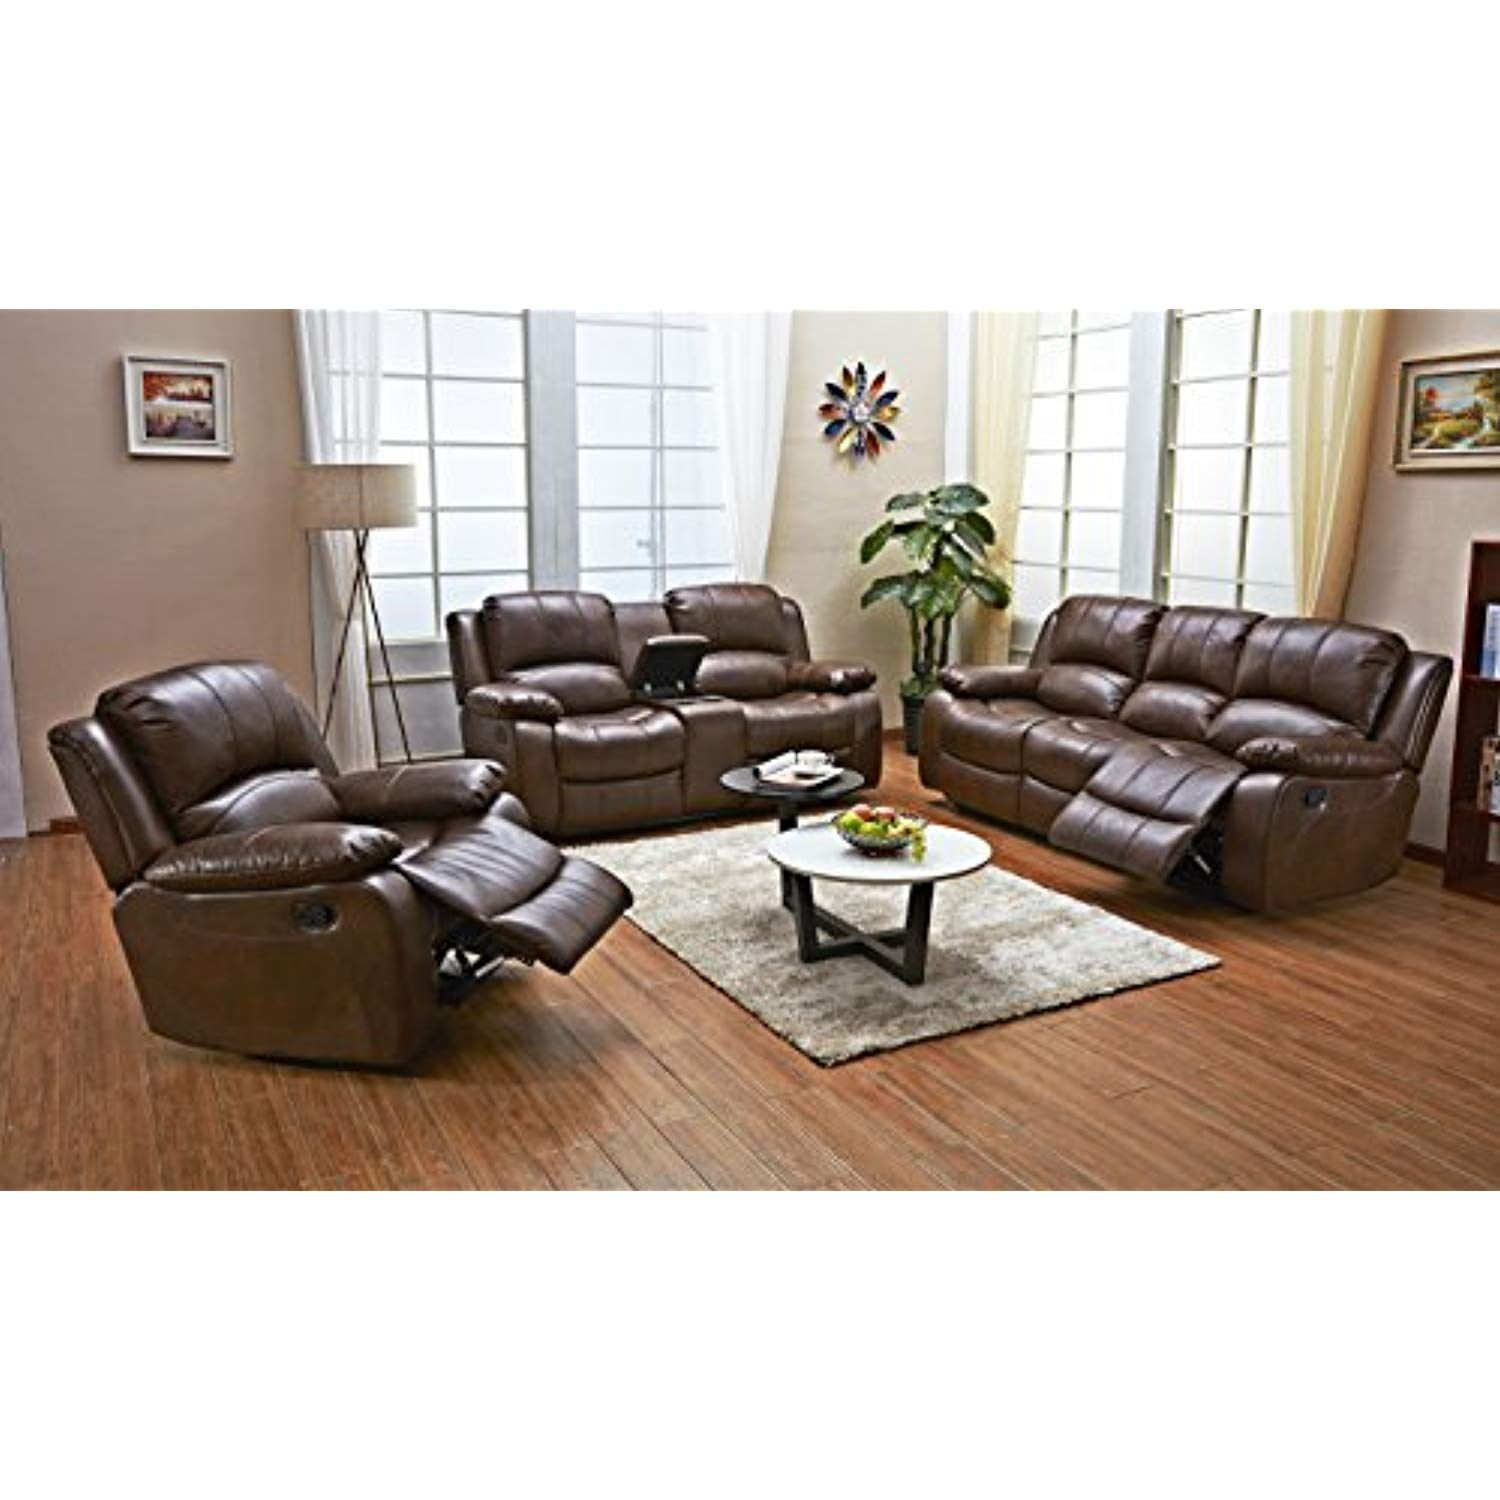 Betsy Furniture 3pc Bonded Leather Recliner Set Living Room Set In